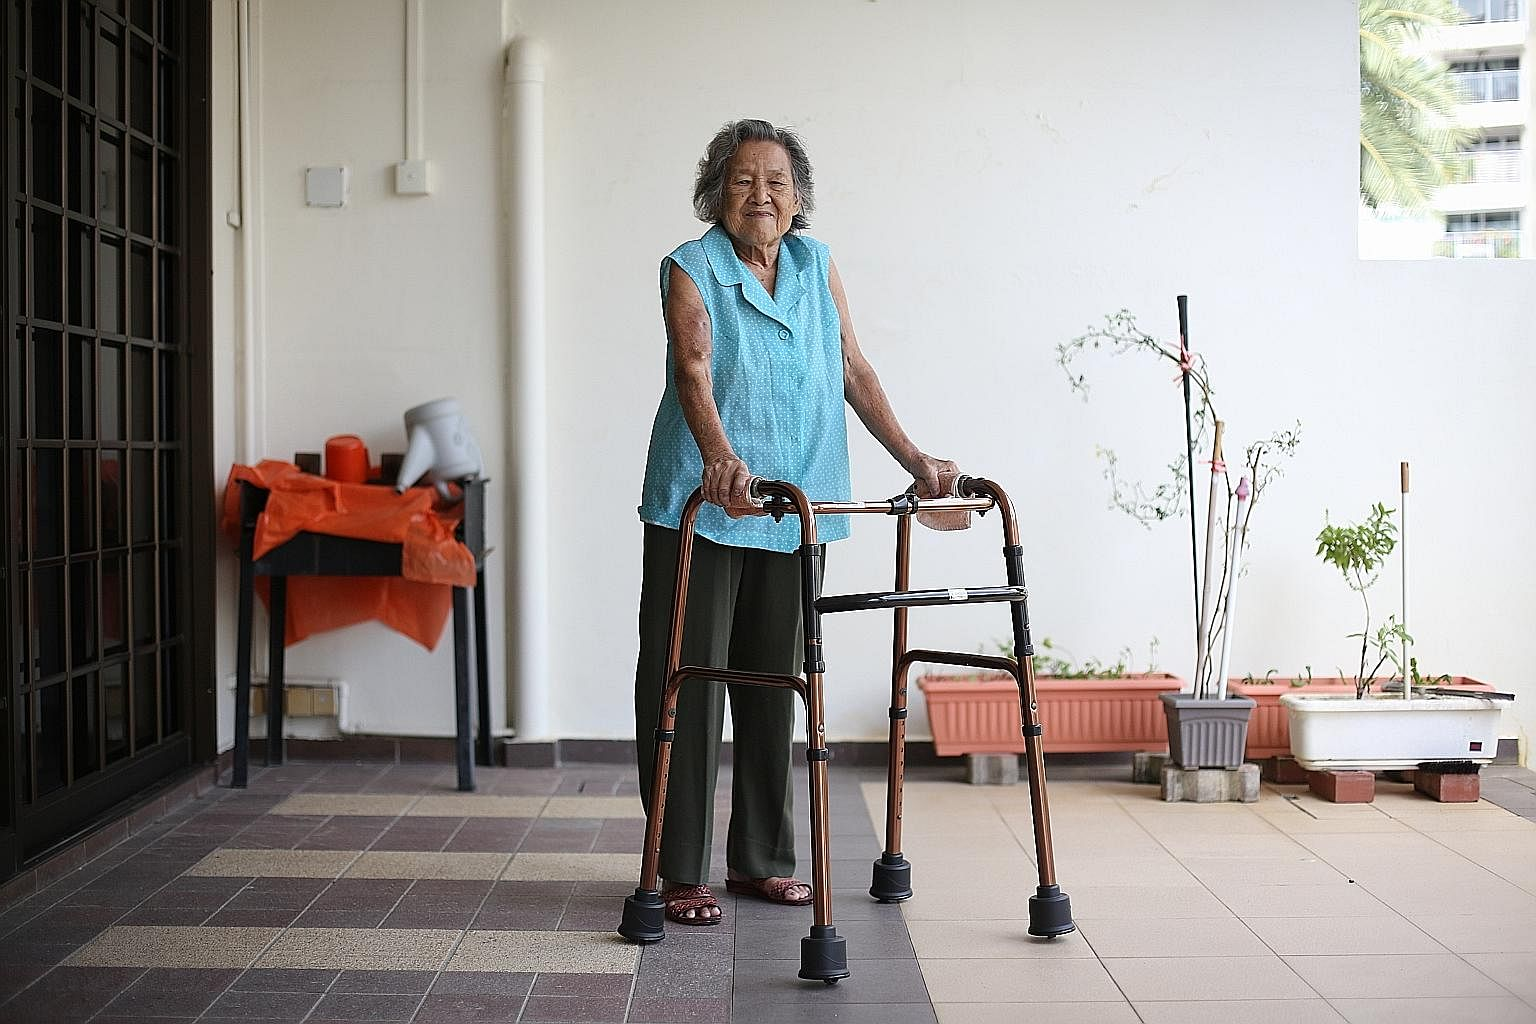 Madam Leck Peow Joo, who suffers from arthritis and end-stage kidney failure, uses the GlydeSafe frame to move around her home. Its retractable wheels allow her to push the frame instead of having to lift it with each step.